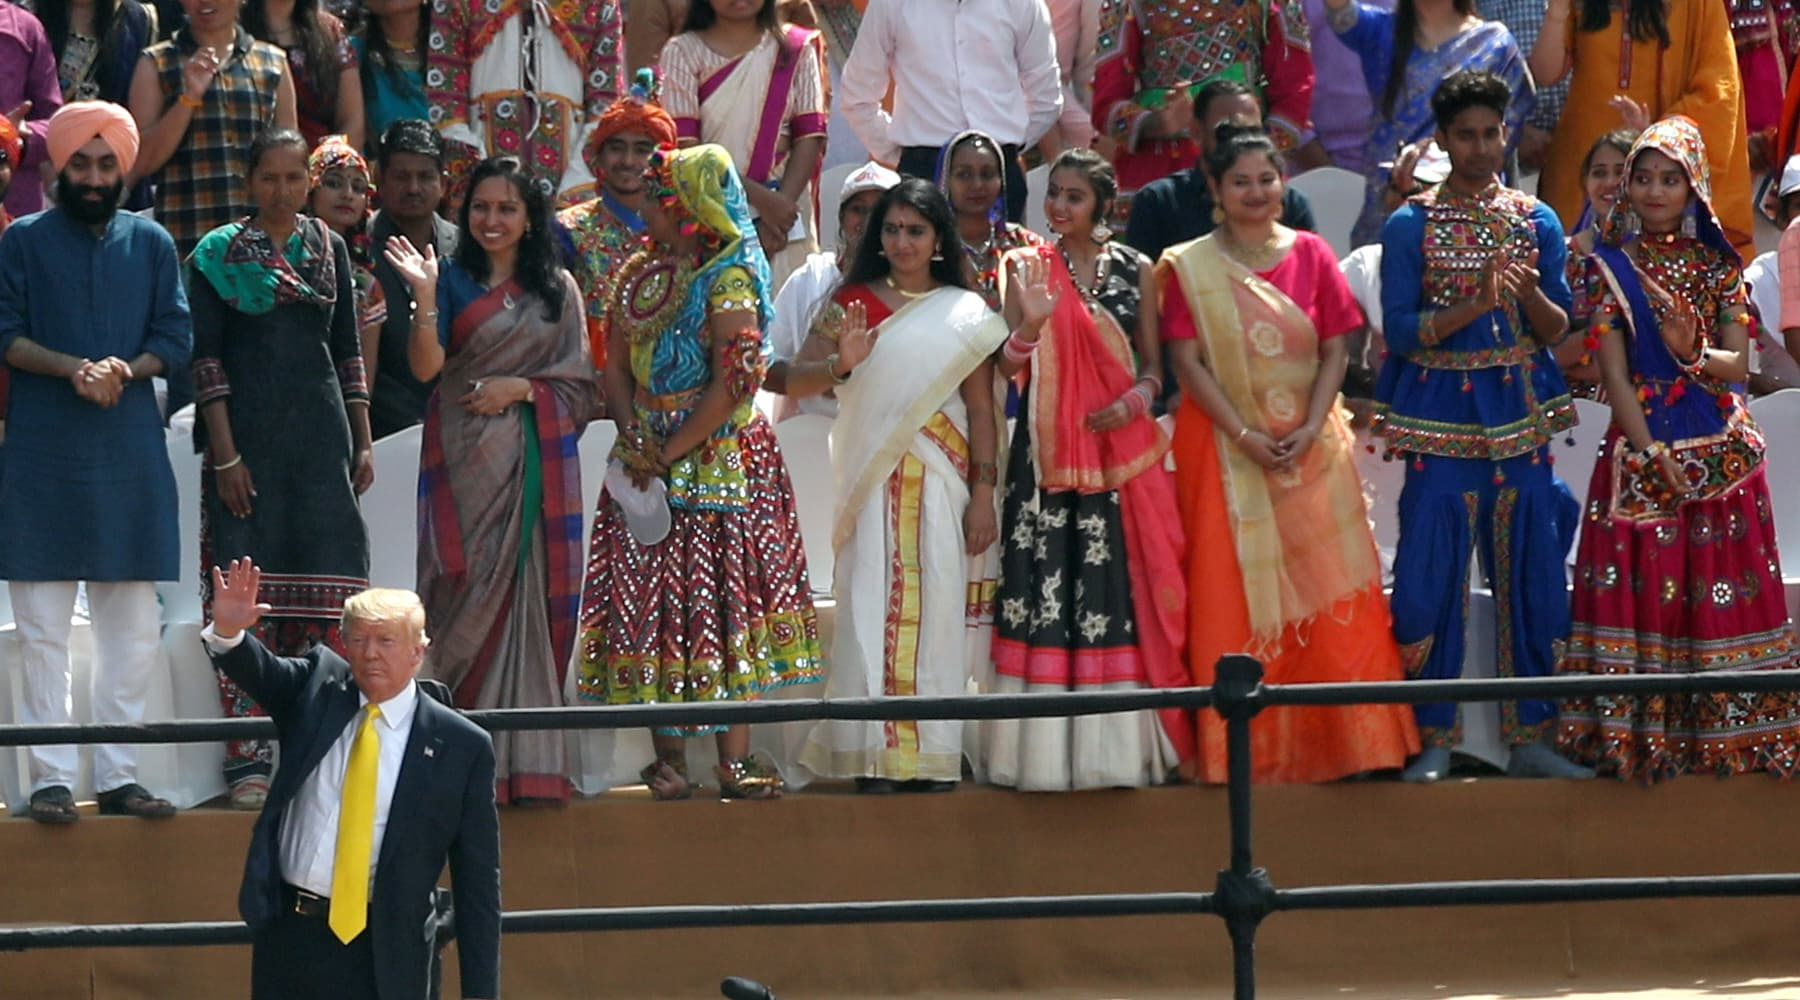 """US President Donald Trump waves as he attends the """"Namaste Trump"""" event at the Sardar Patel Stadium in Ahmedabad, India on Feb 24. — Reuters"""